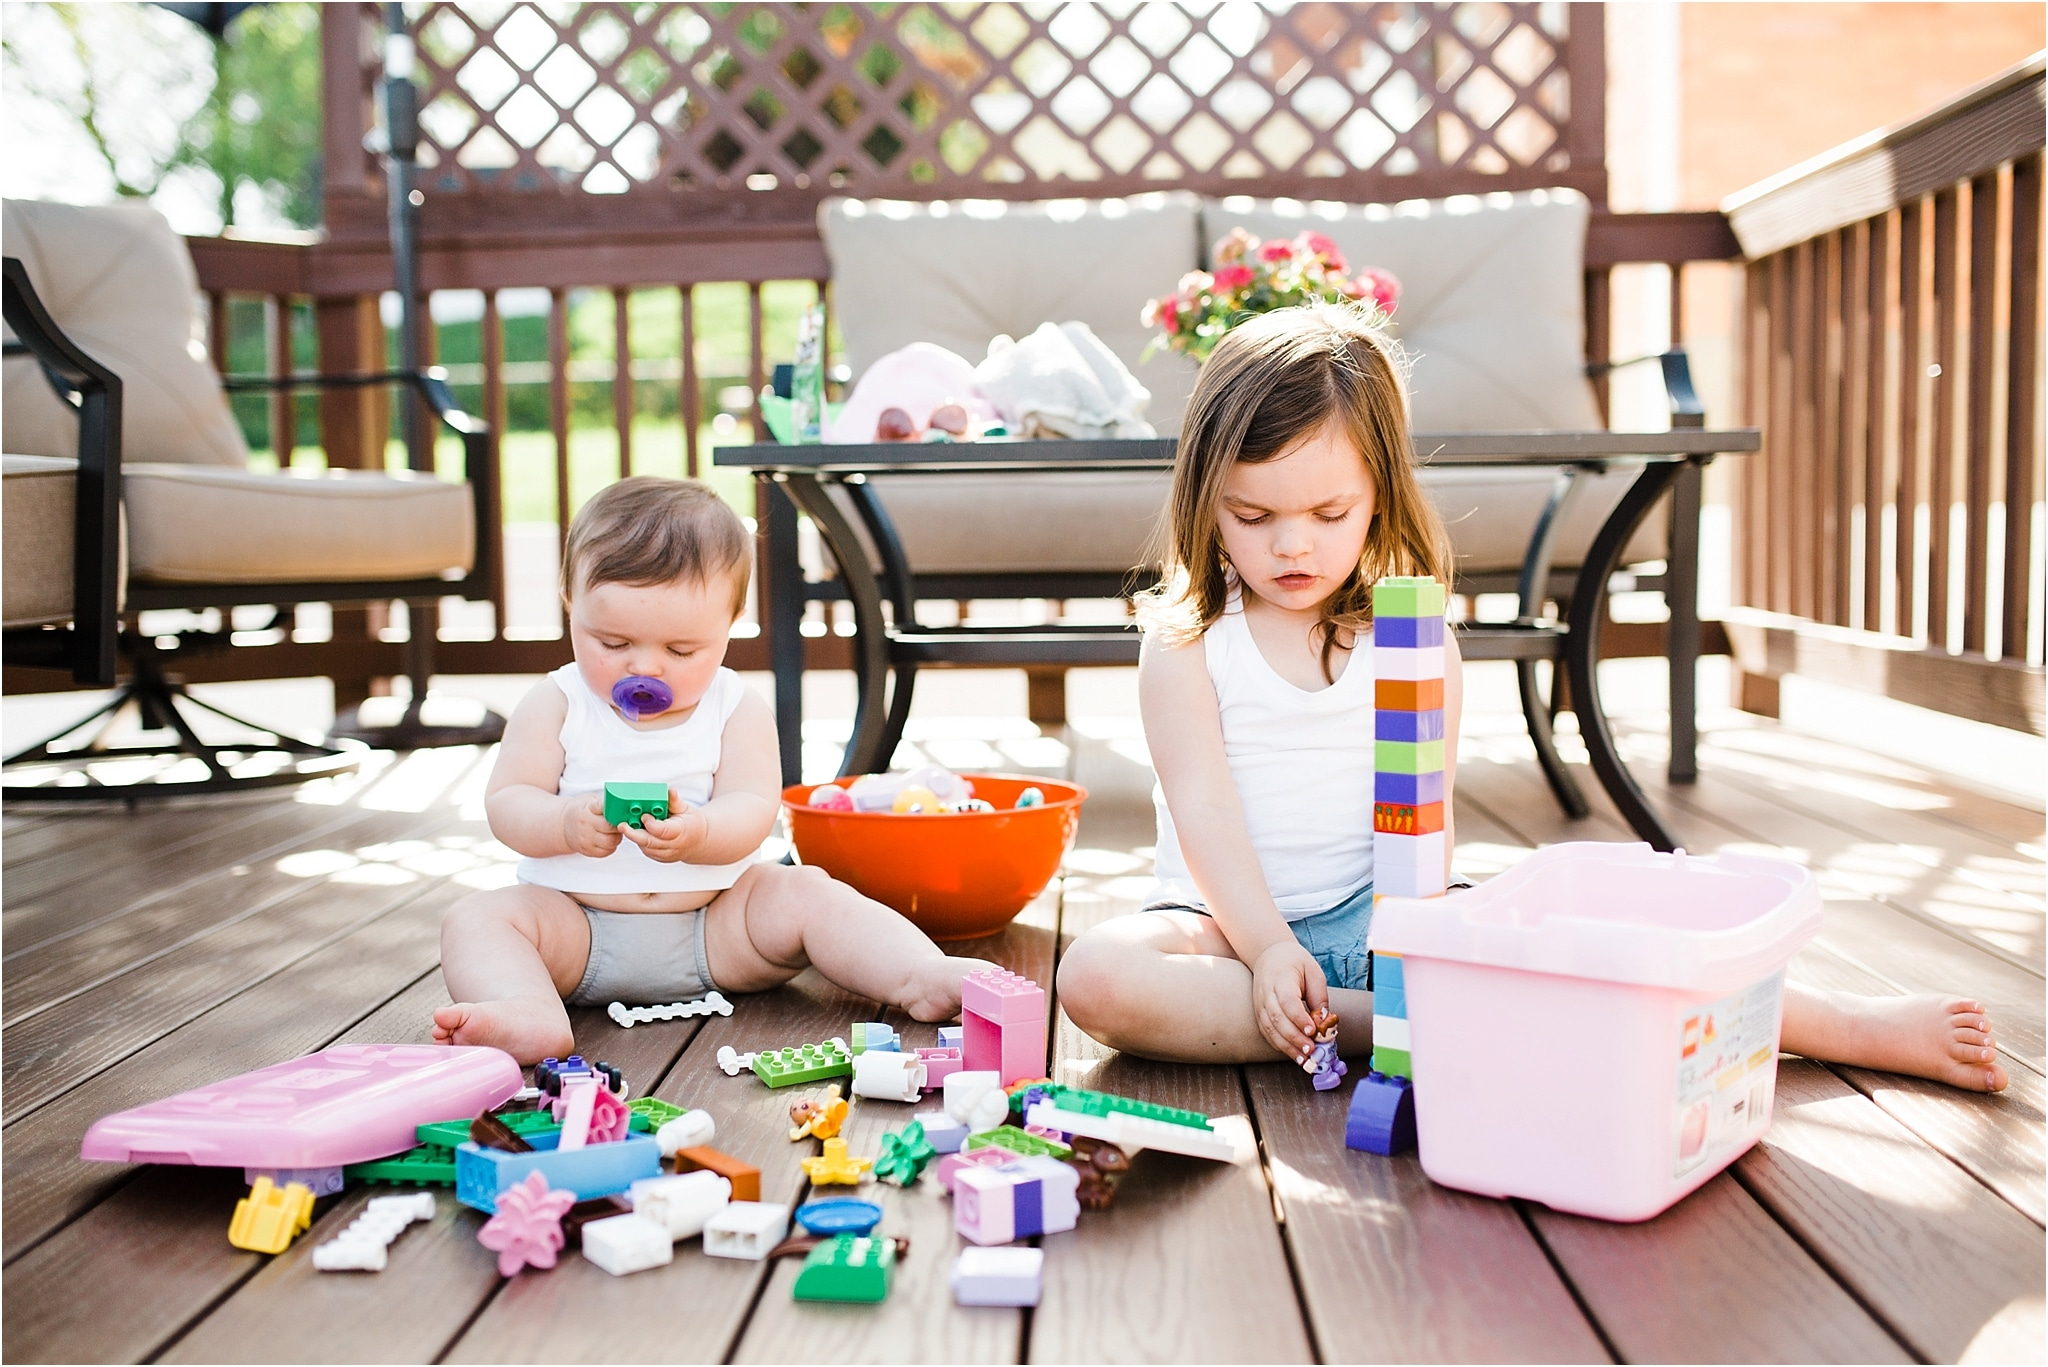 sibling sister playing blocks outdoors together